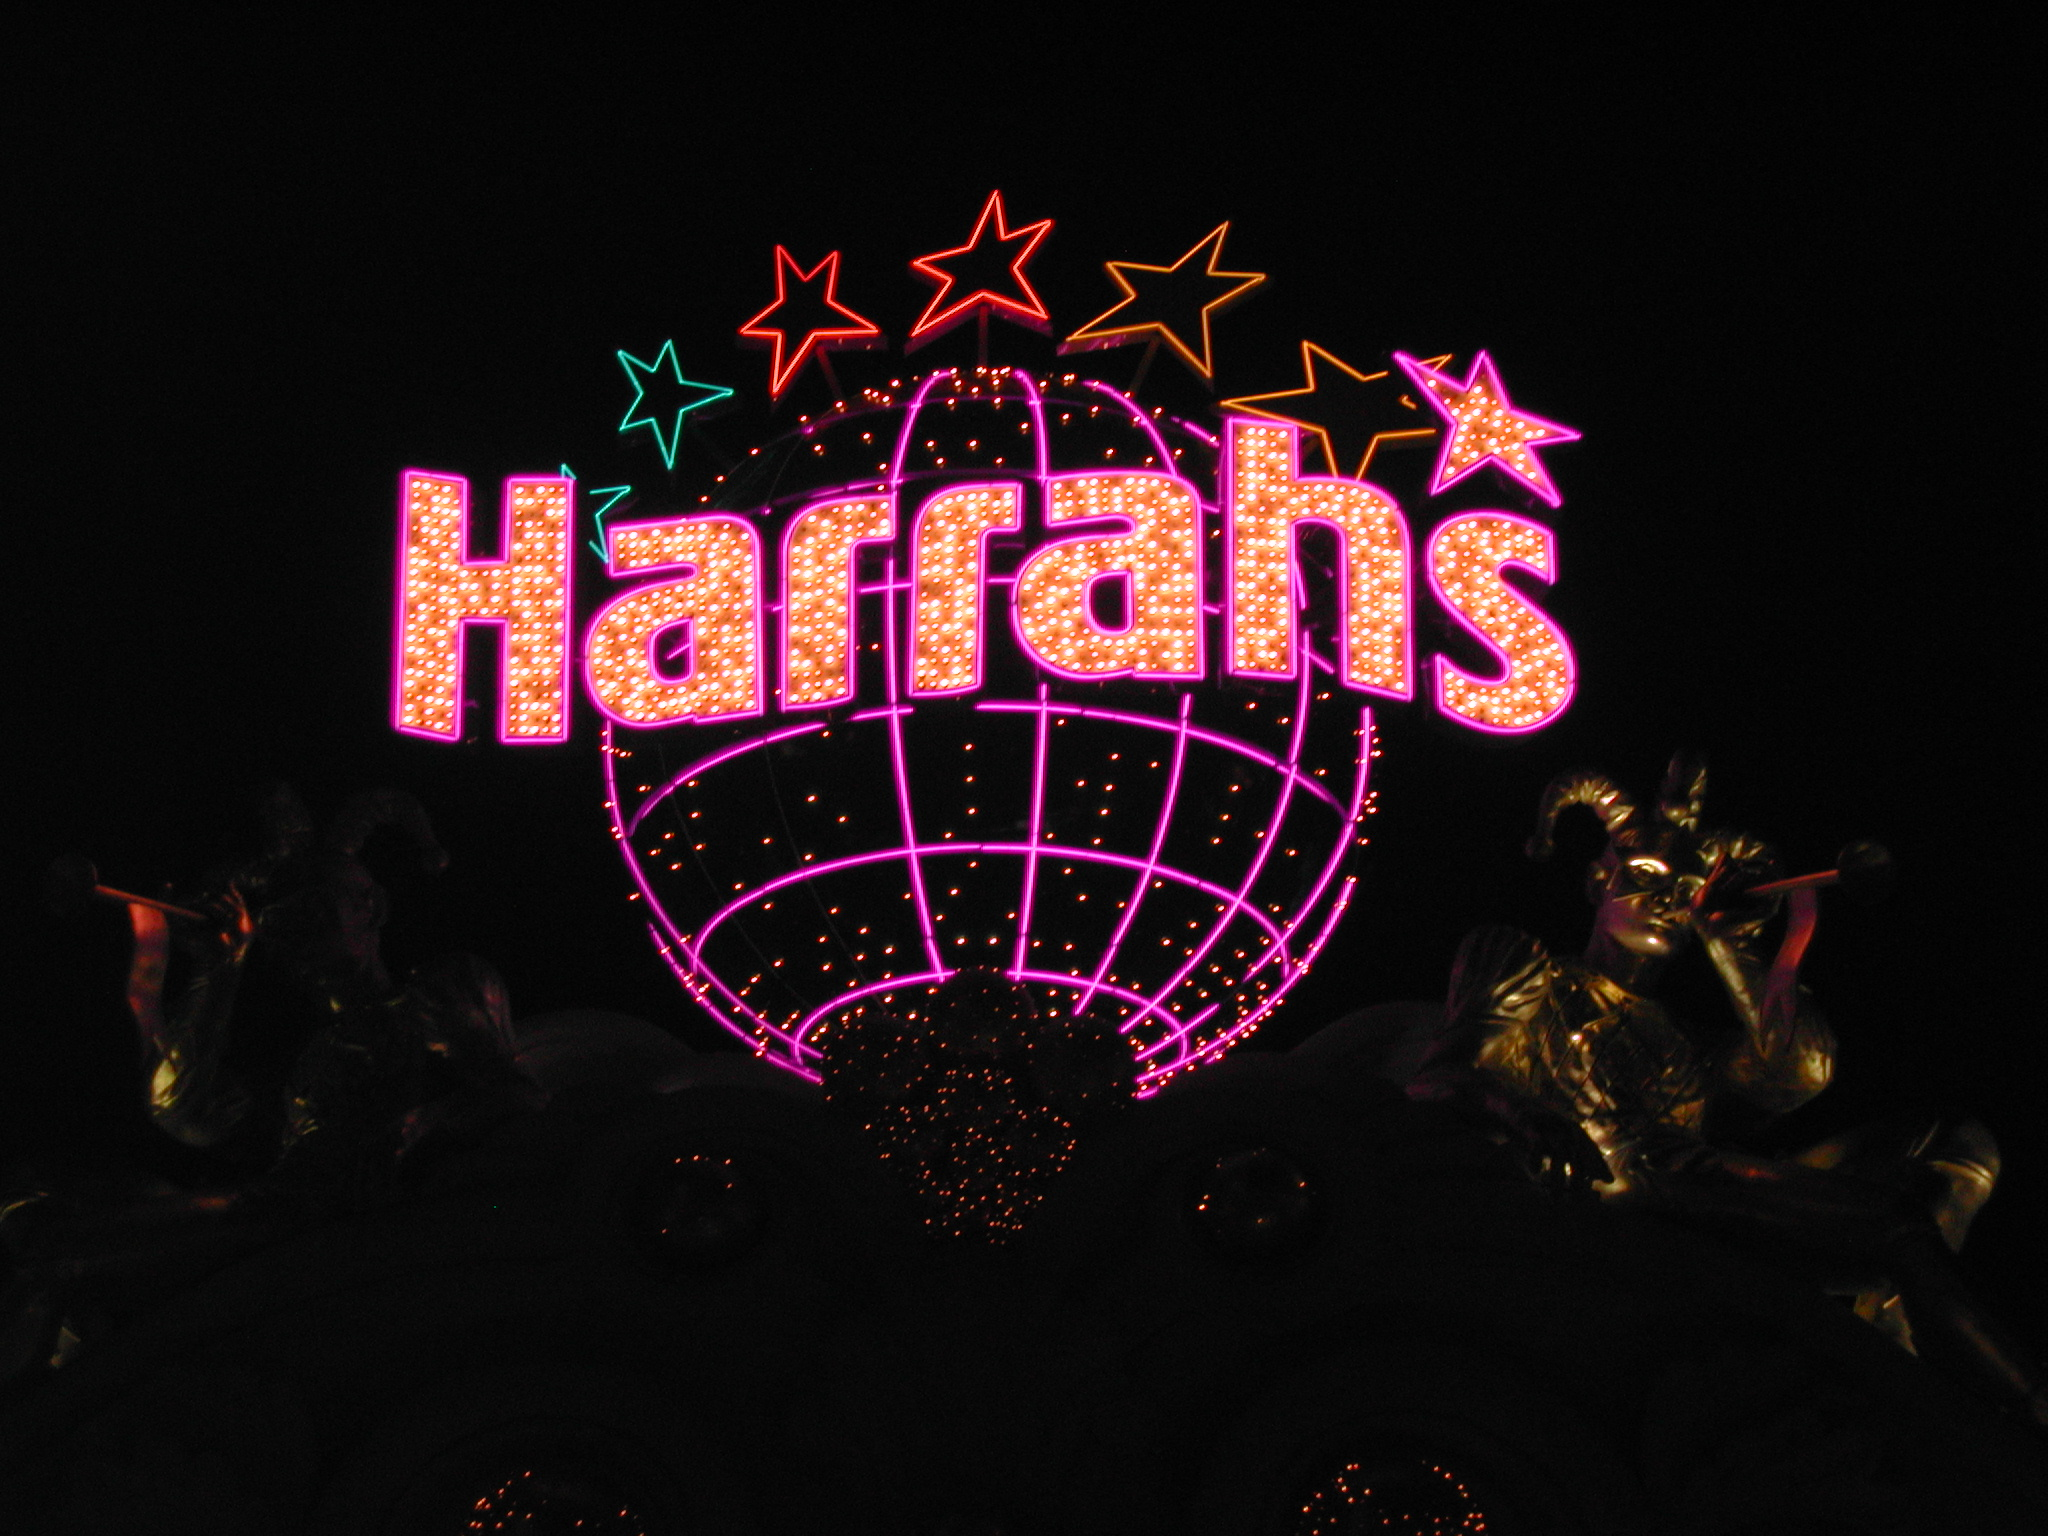 harrahs online slot games